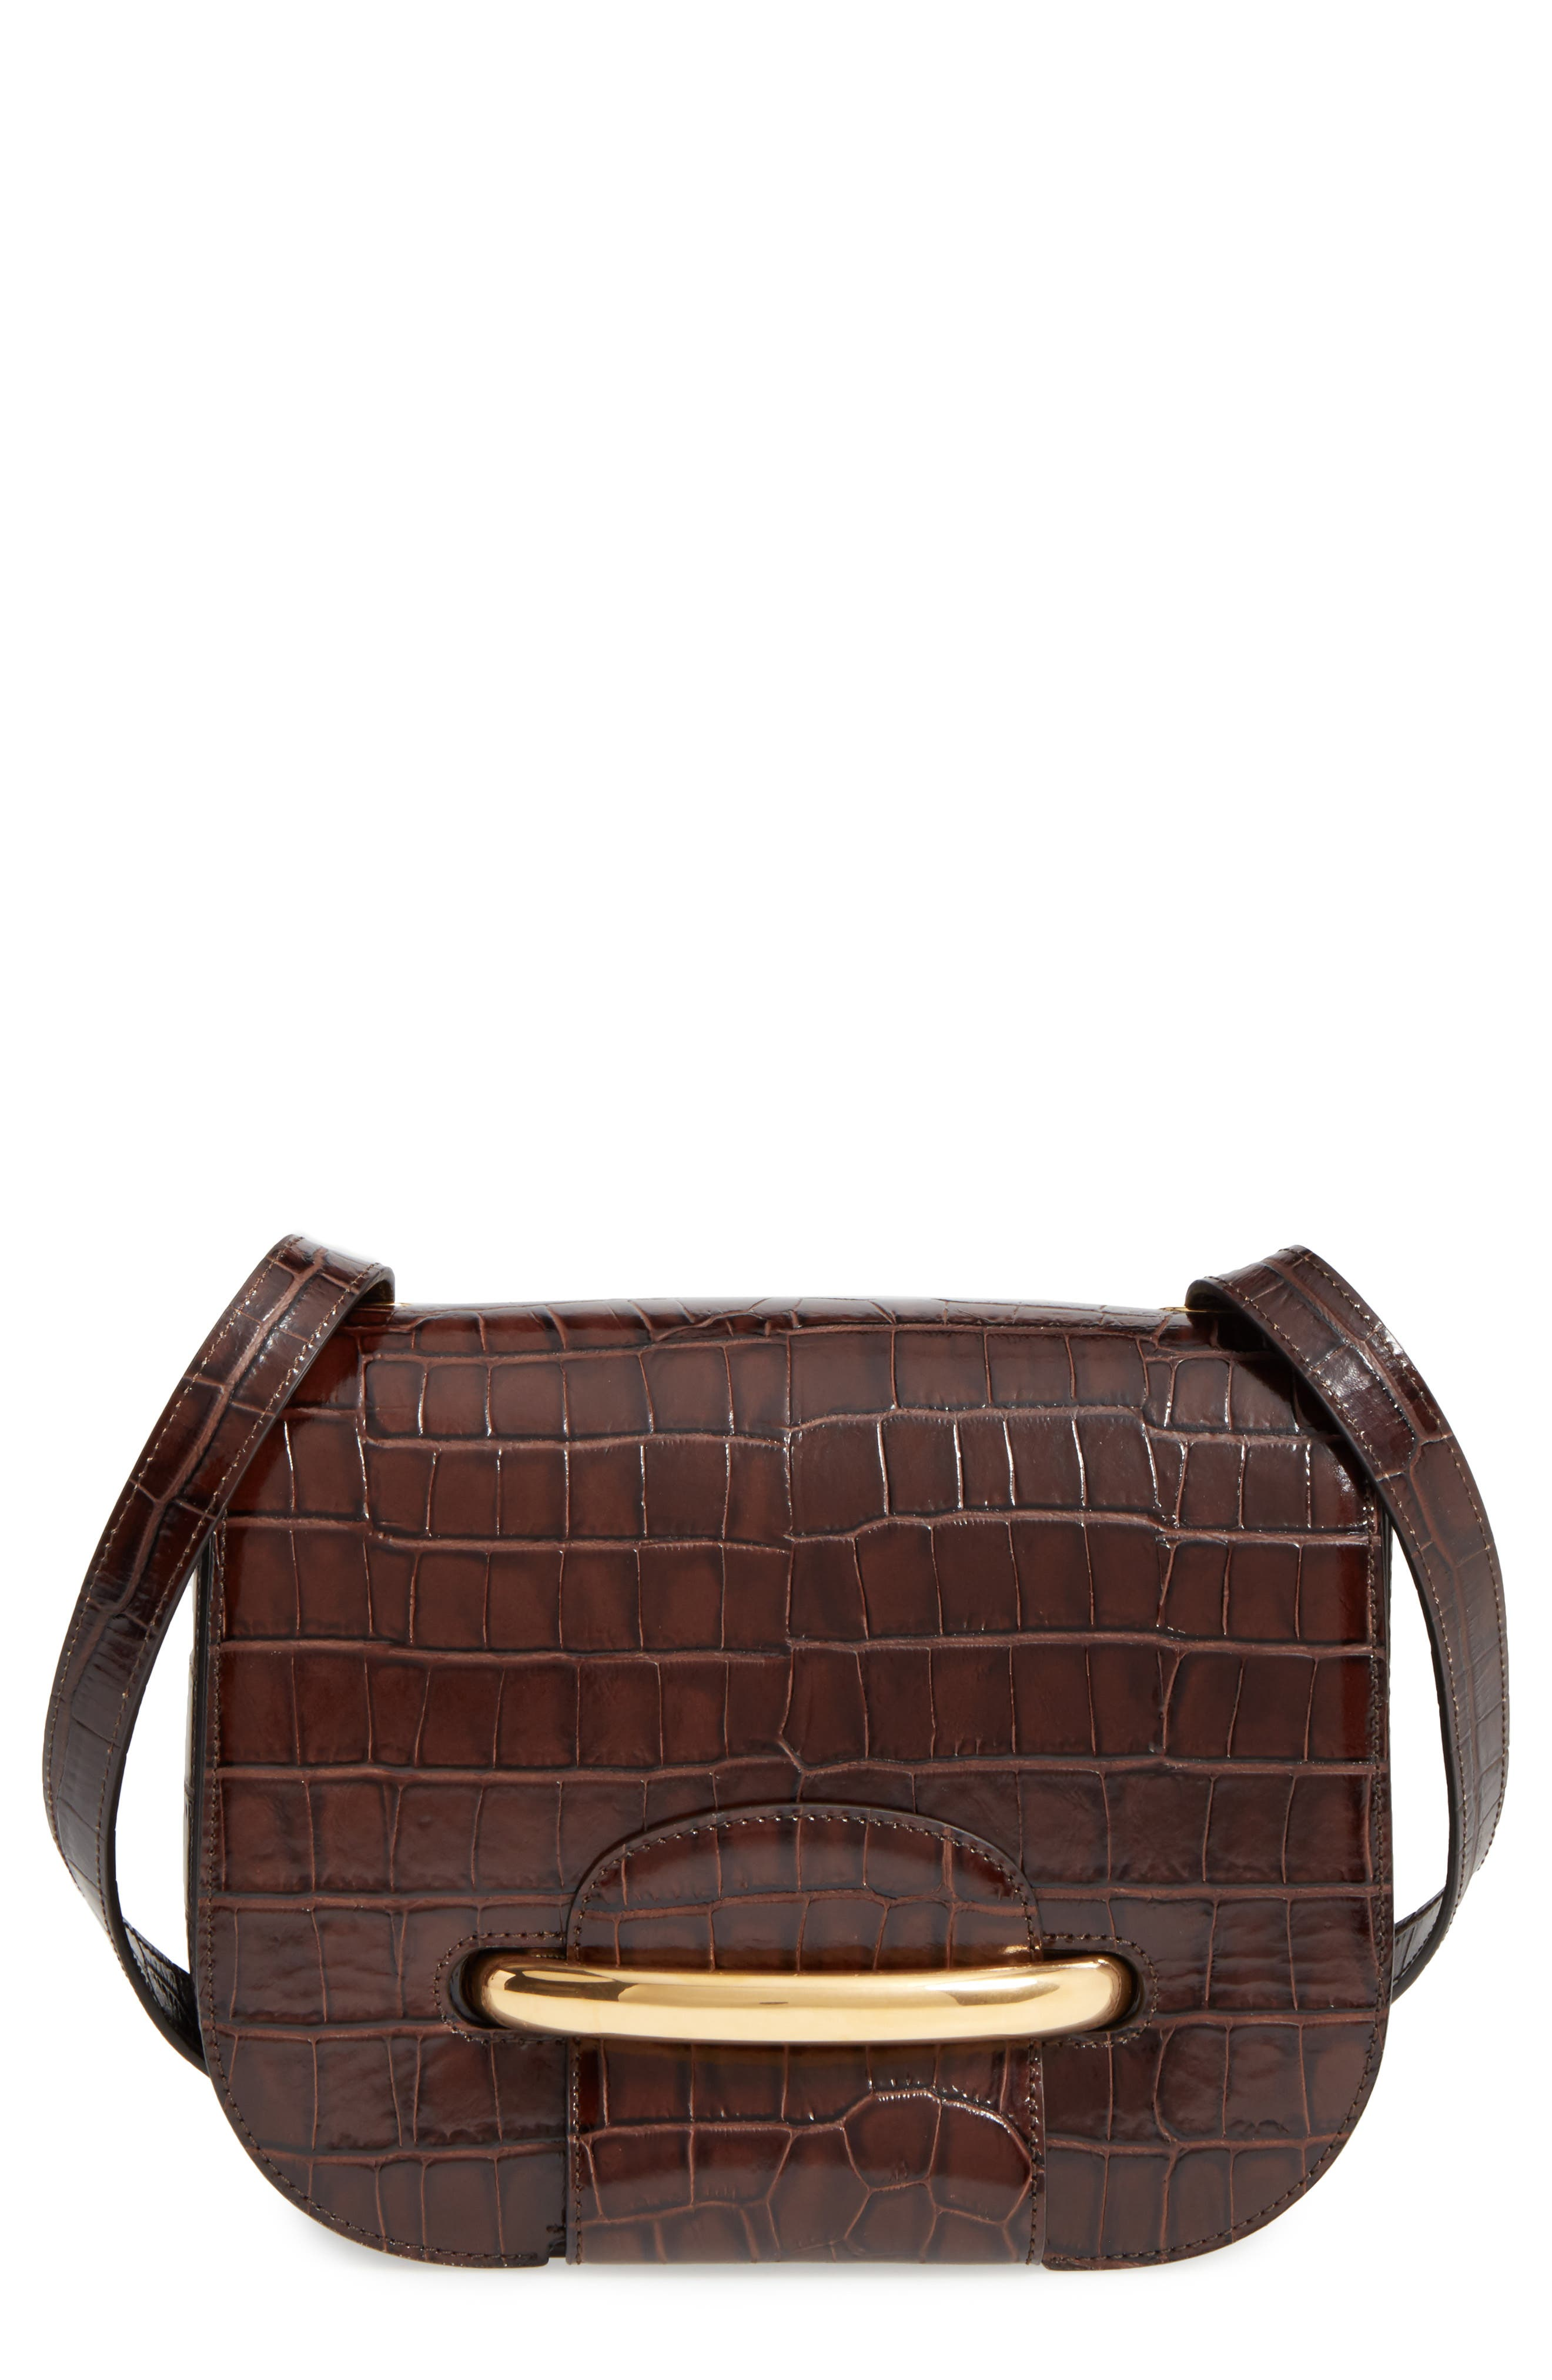 MULBERRY,                             Selwood Leather Saddle Bag,                             Main thumbnail 1, color,                             200